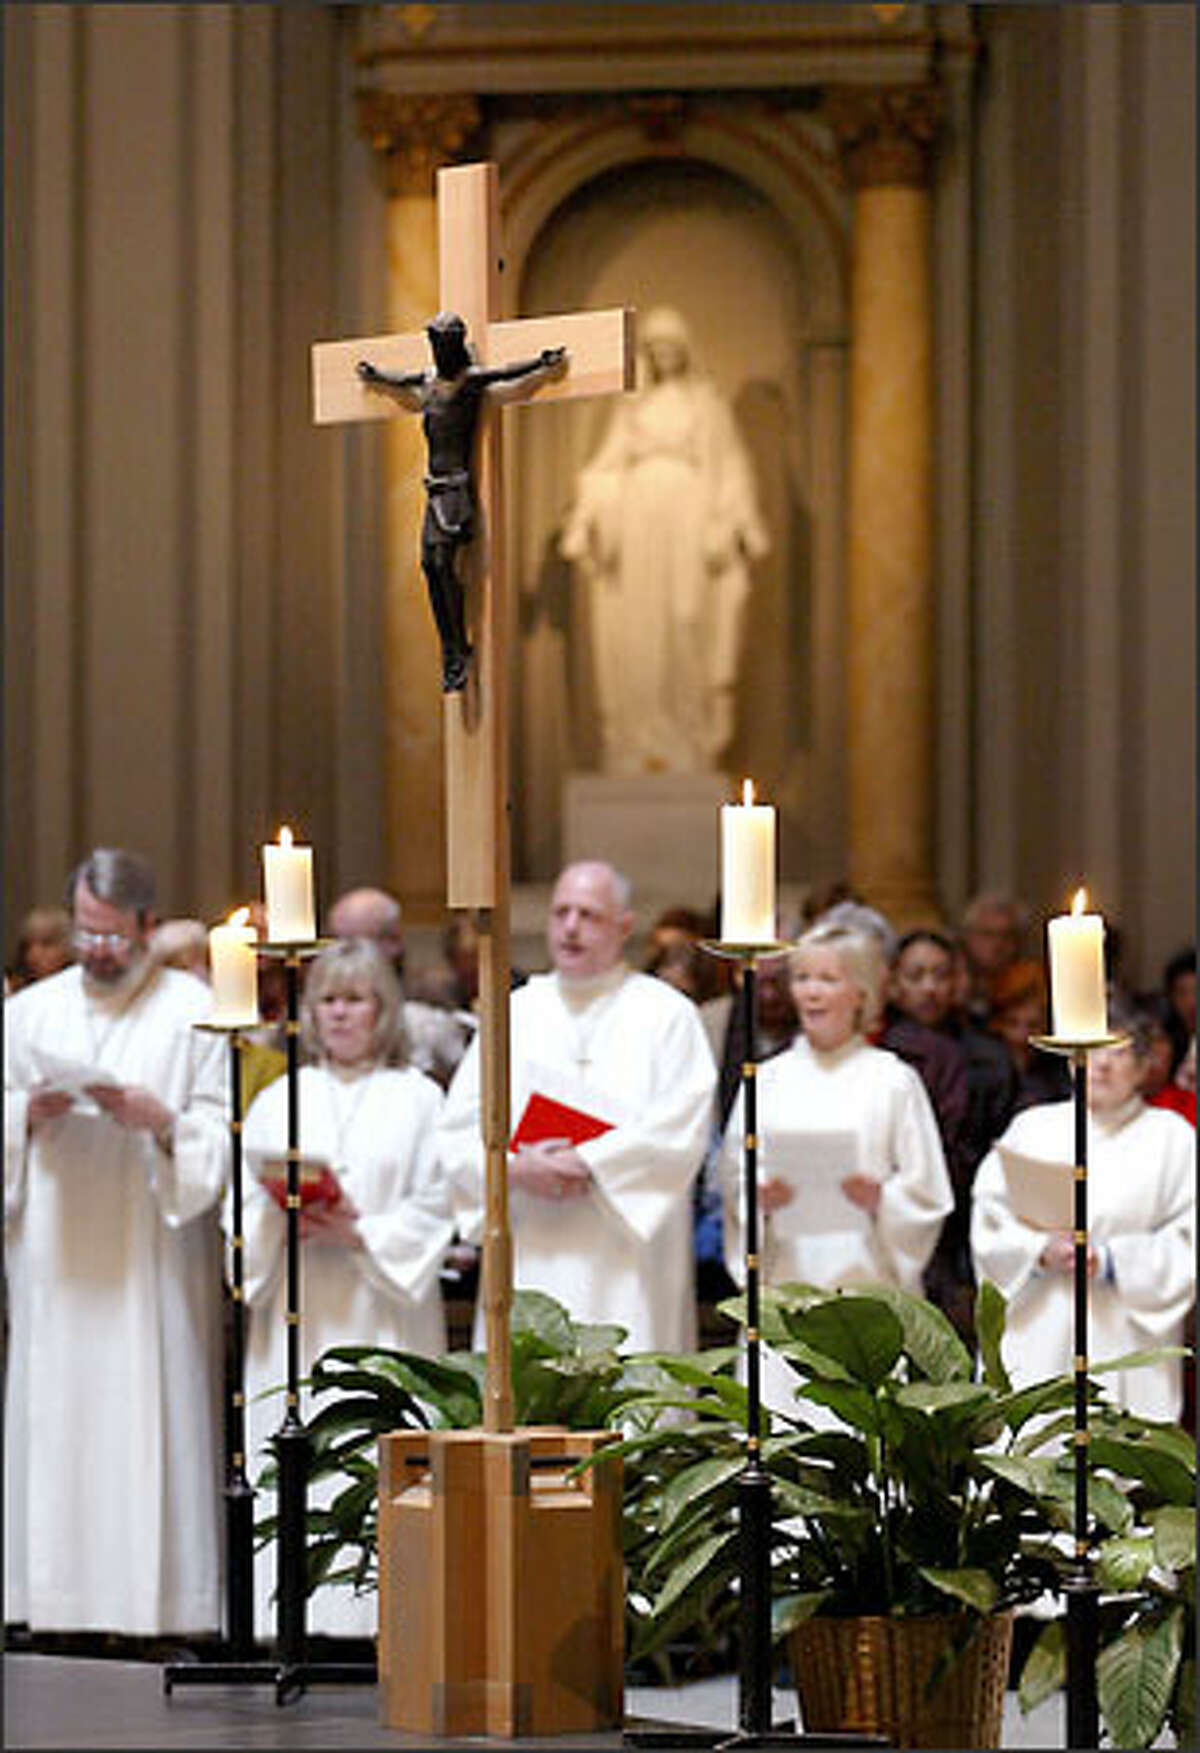 The congregation at St. James Cathedral celebrates the first Sunday Mass of Lent yesterday.